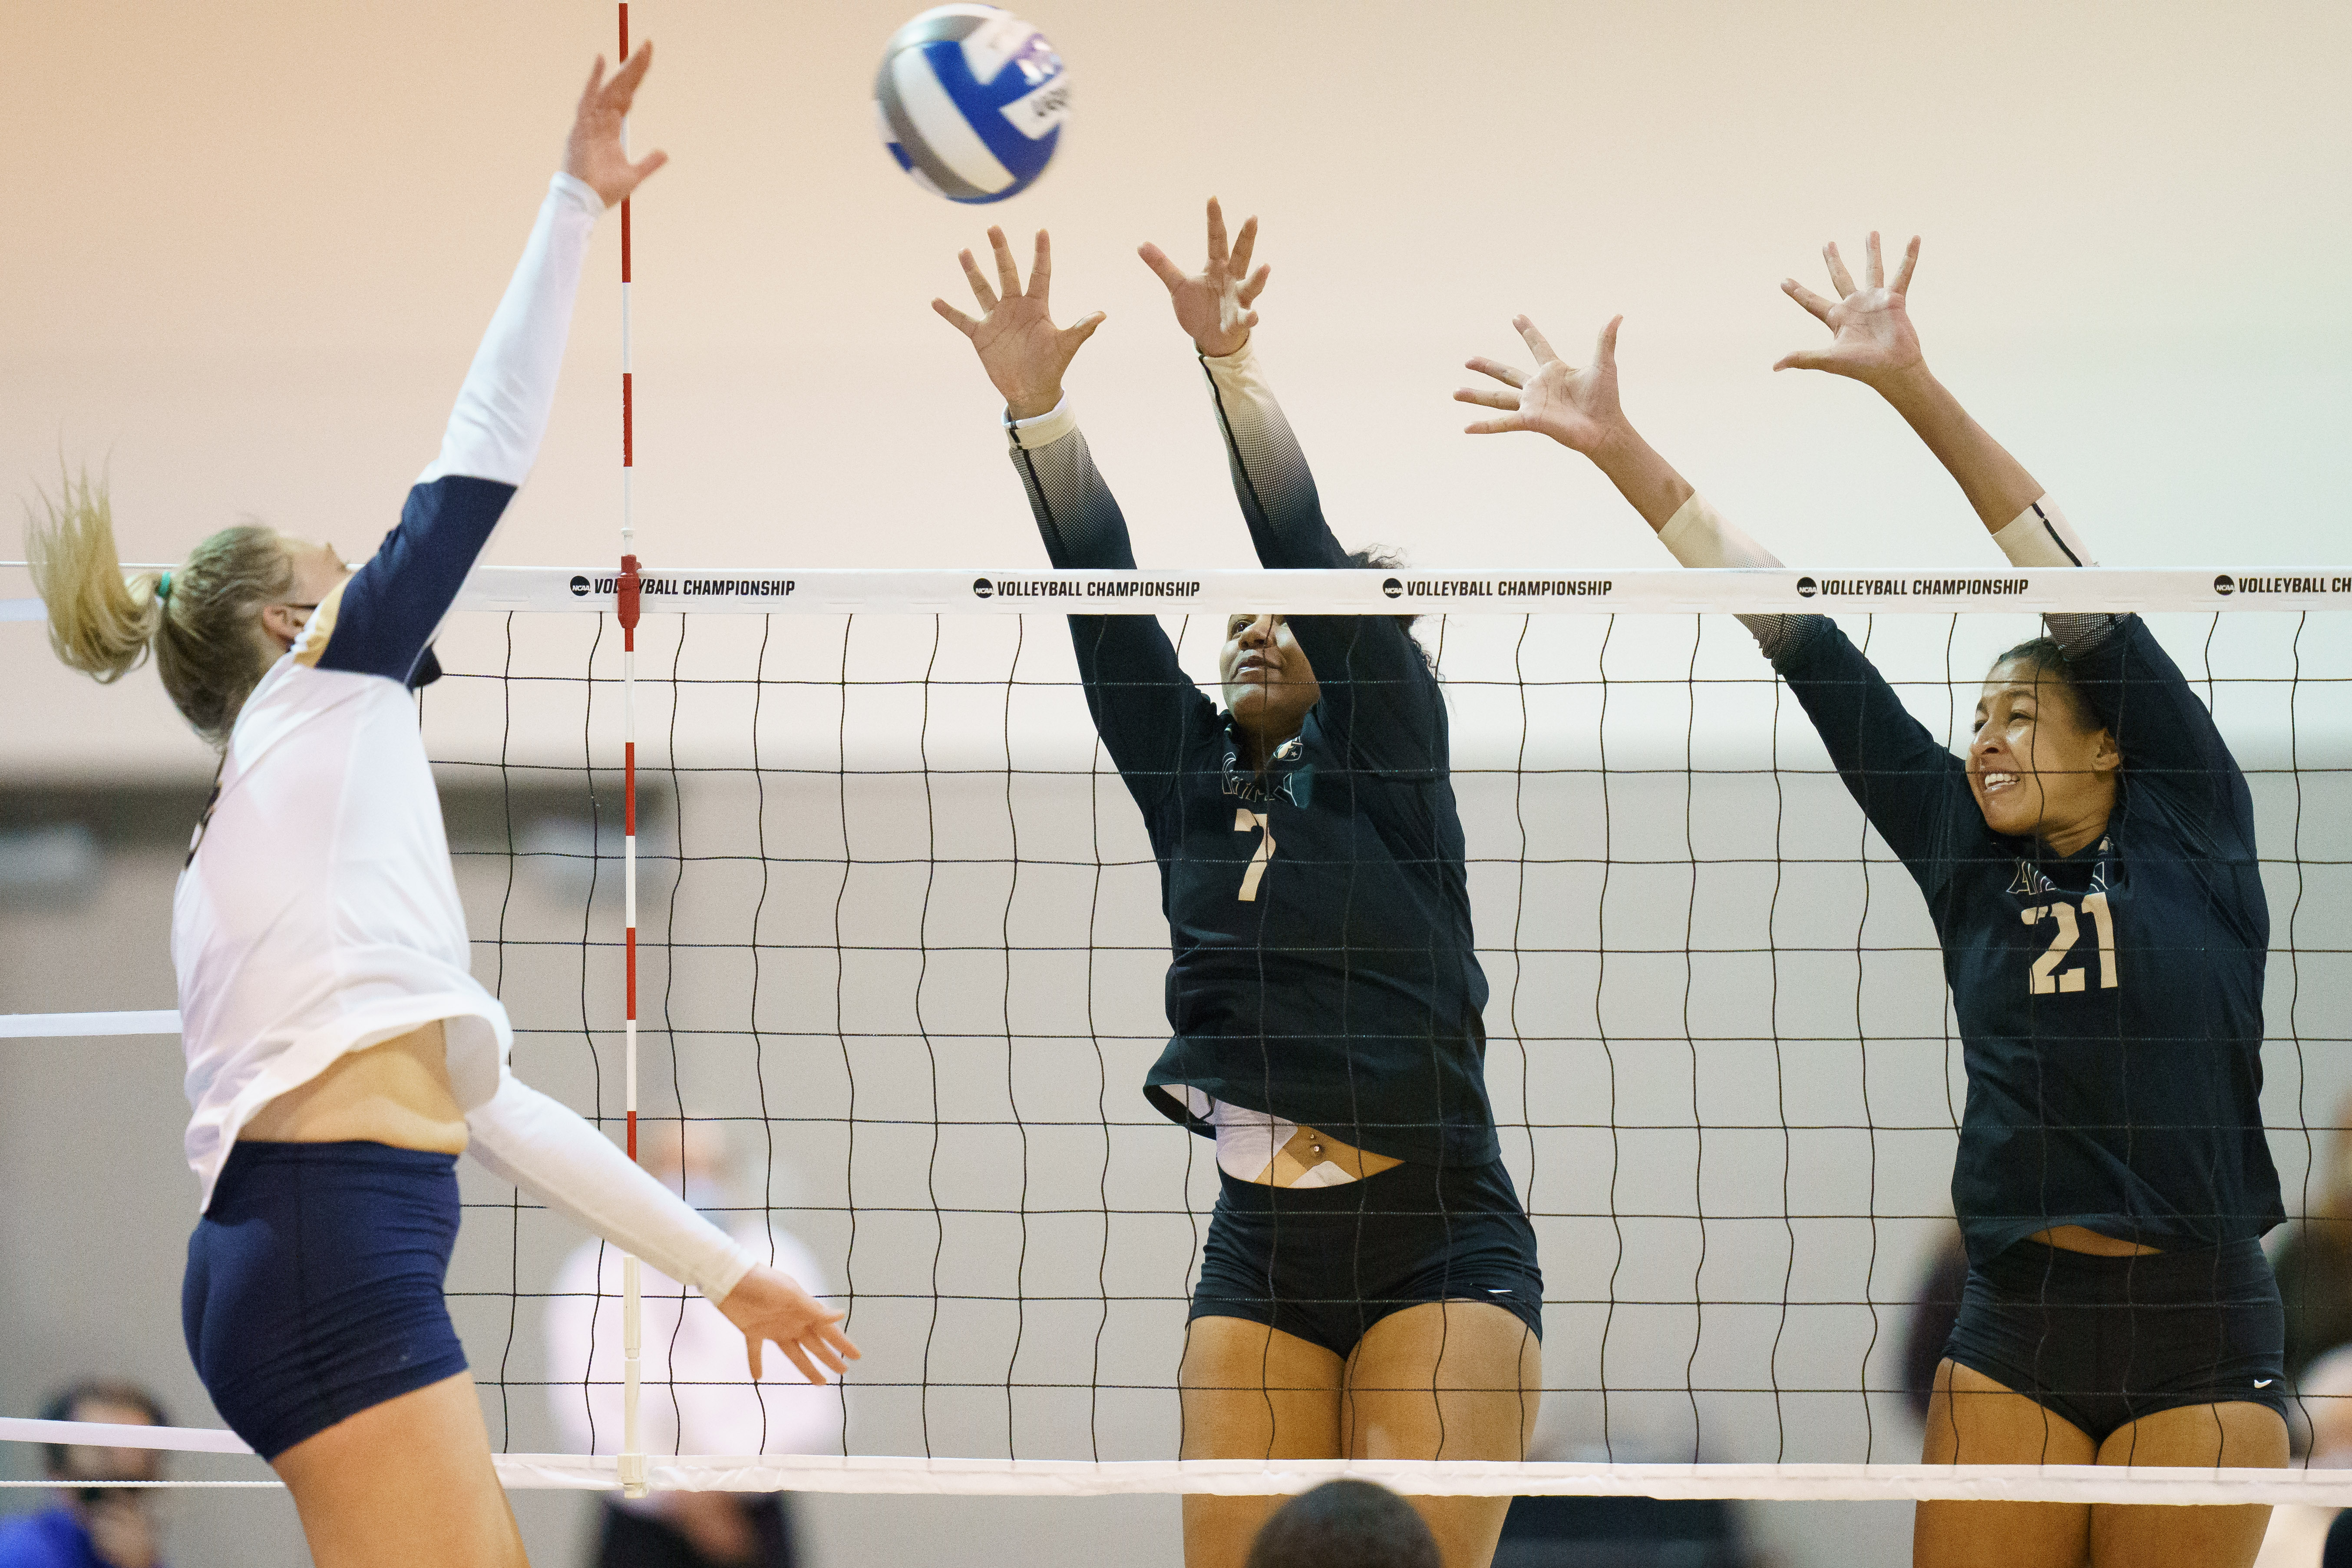 ND Volleyball: The Fightin' Irish Brings The Battle To The Black Knights